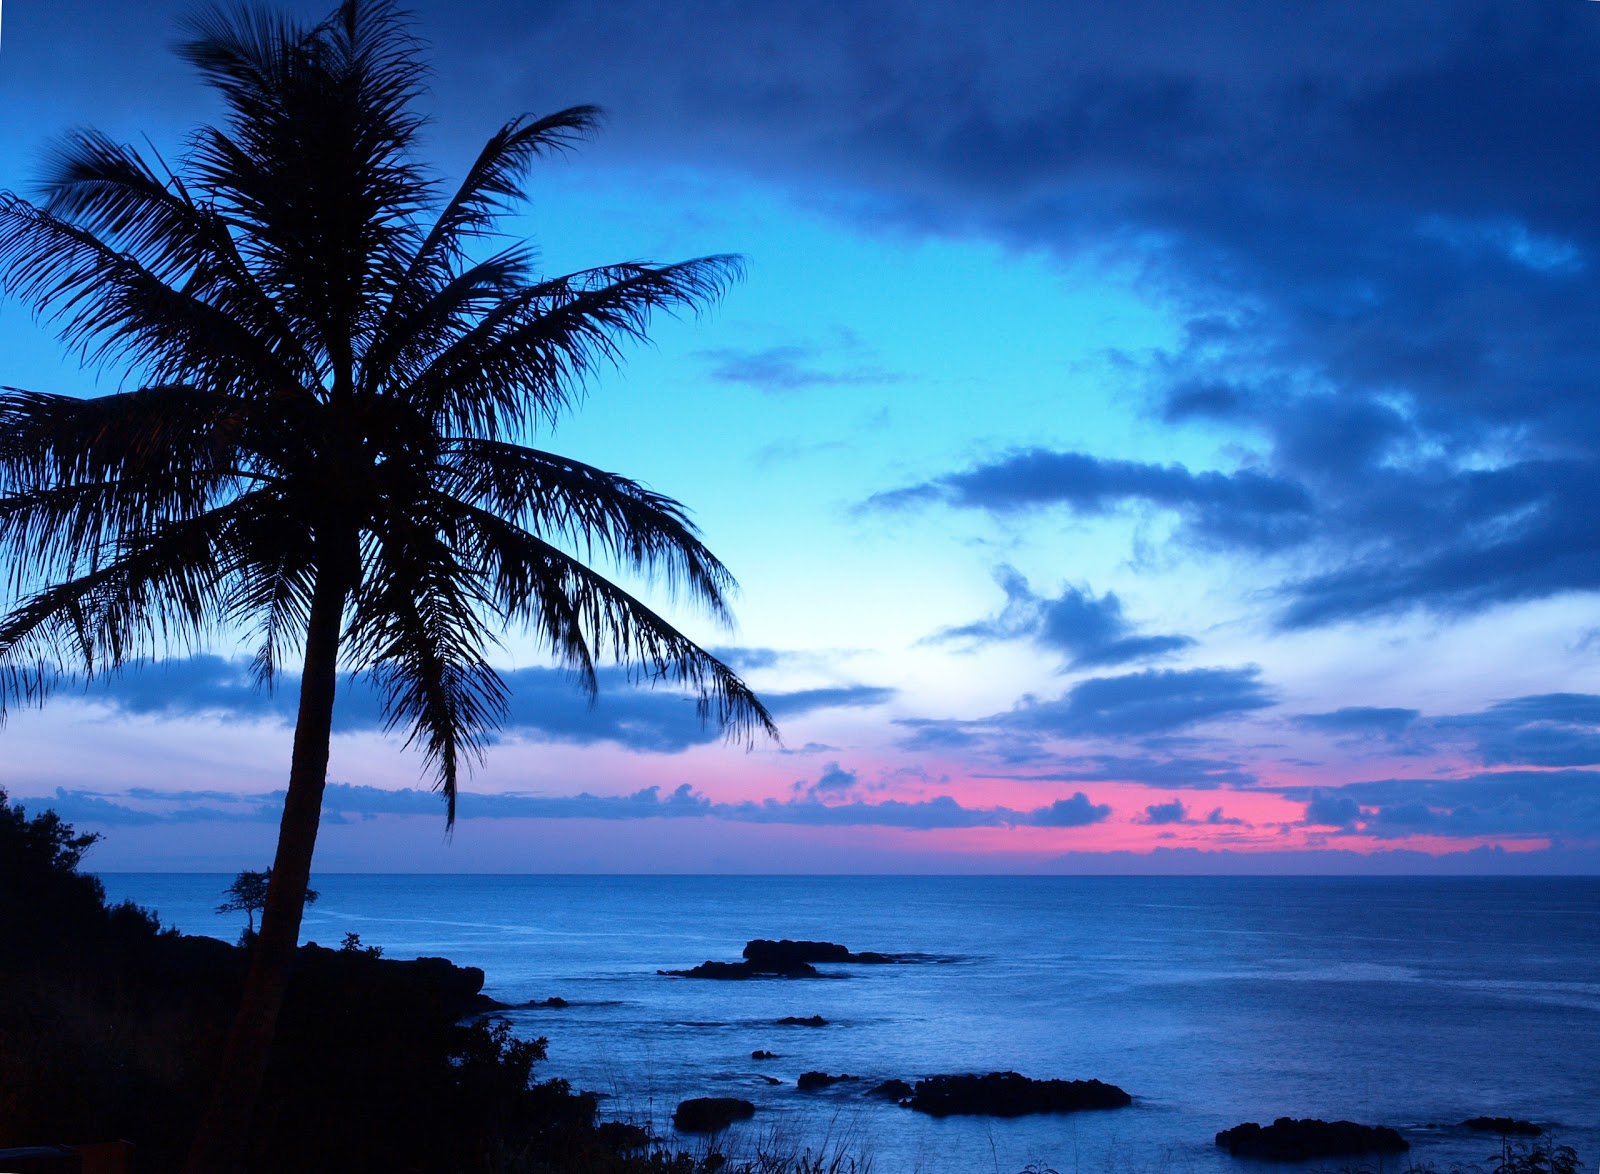 hawaii - one of the most famous places in the world - exotic travel